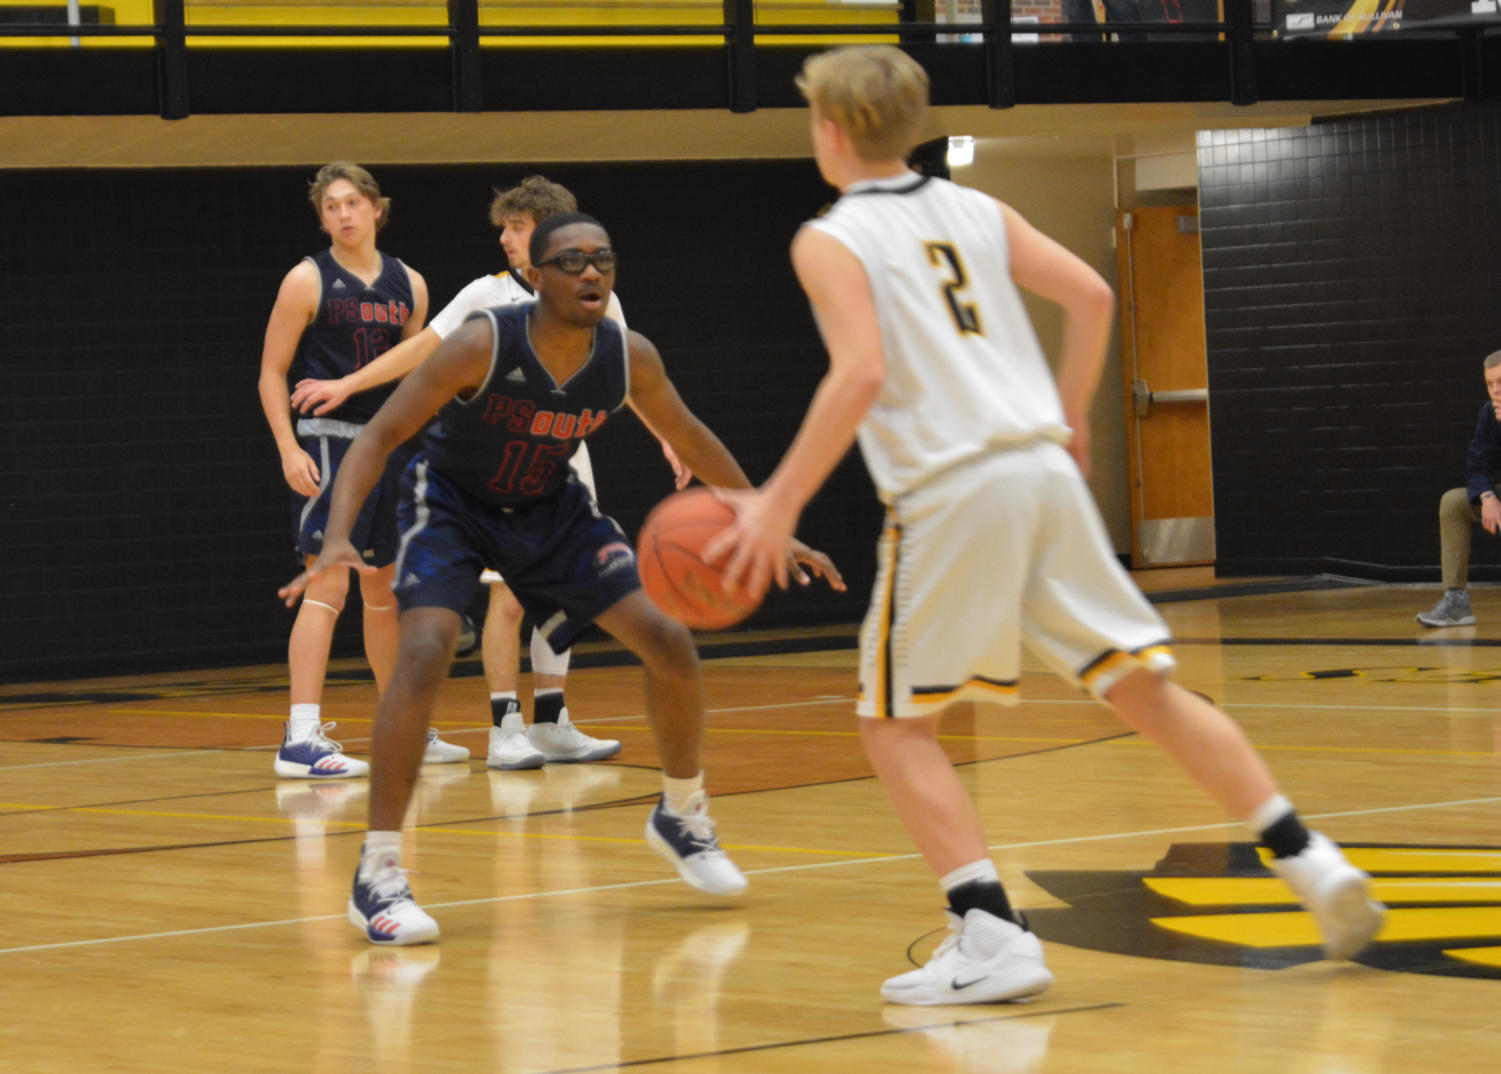 Sophomore guard Rhyan Shanklin tries to prevent the opposition from scoring.